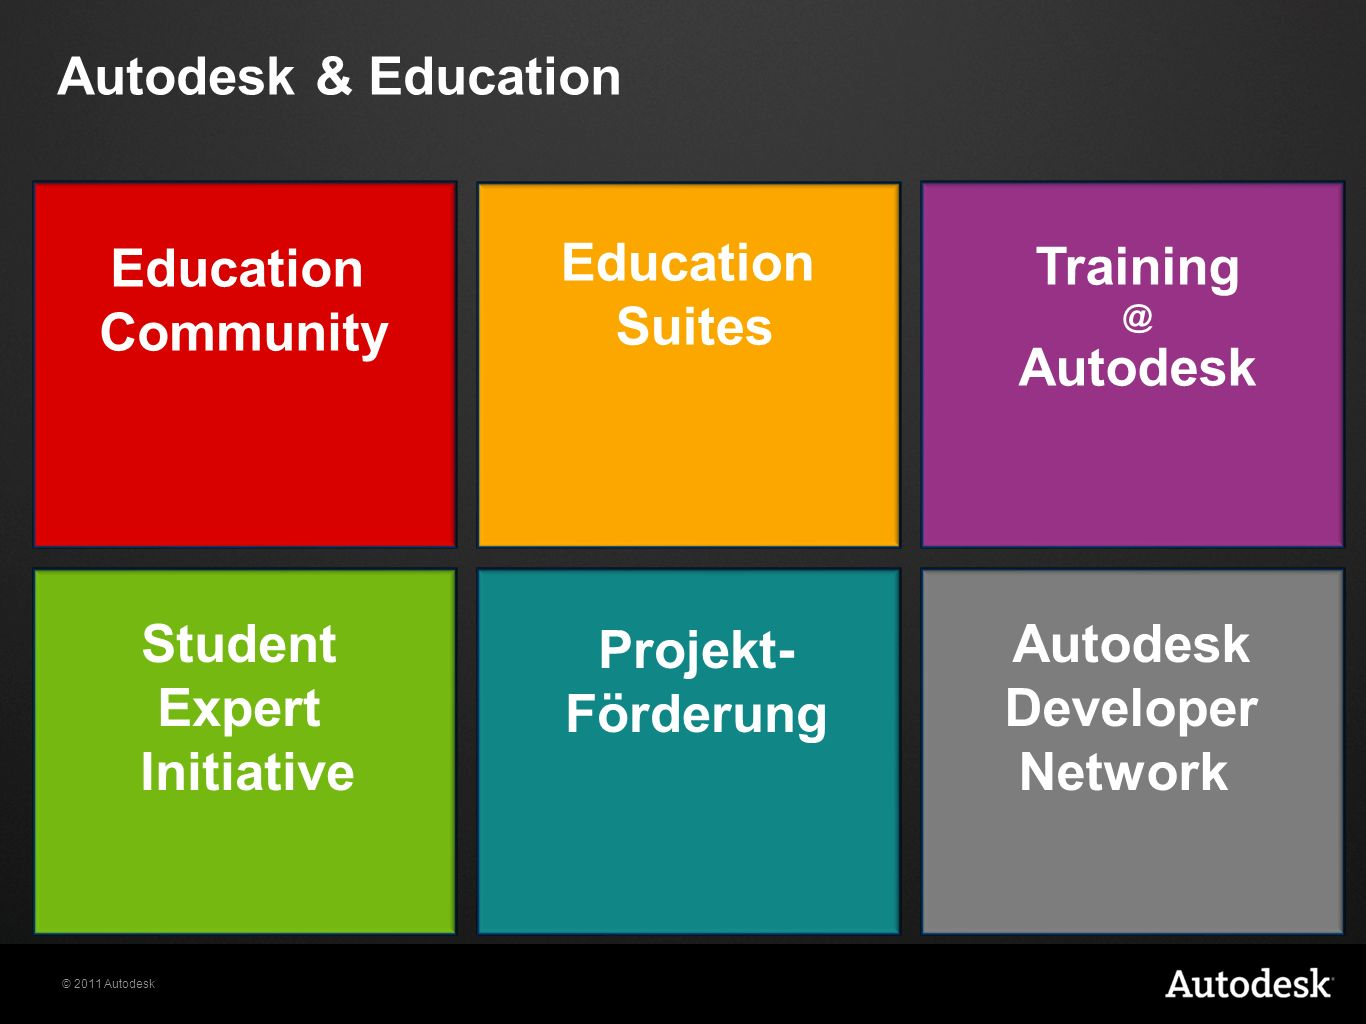 © 2011 Autodesk Autodesk & Education Projekt- Förderung Autodesk Developer Network Education Suites Training @ Autodesk Education Community Student Expert Initiative